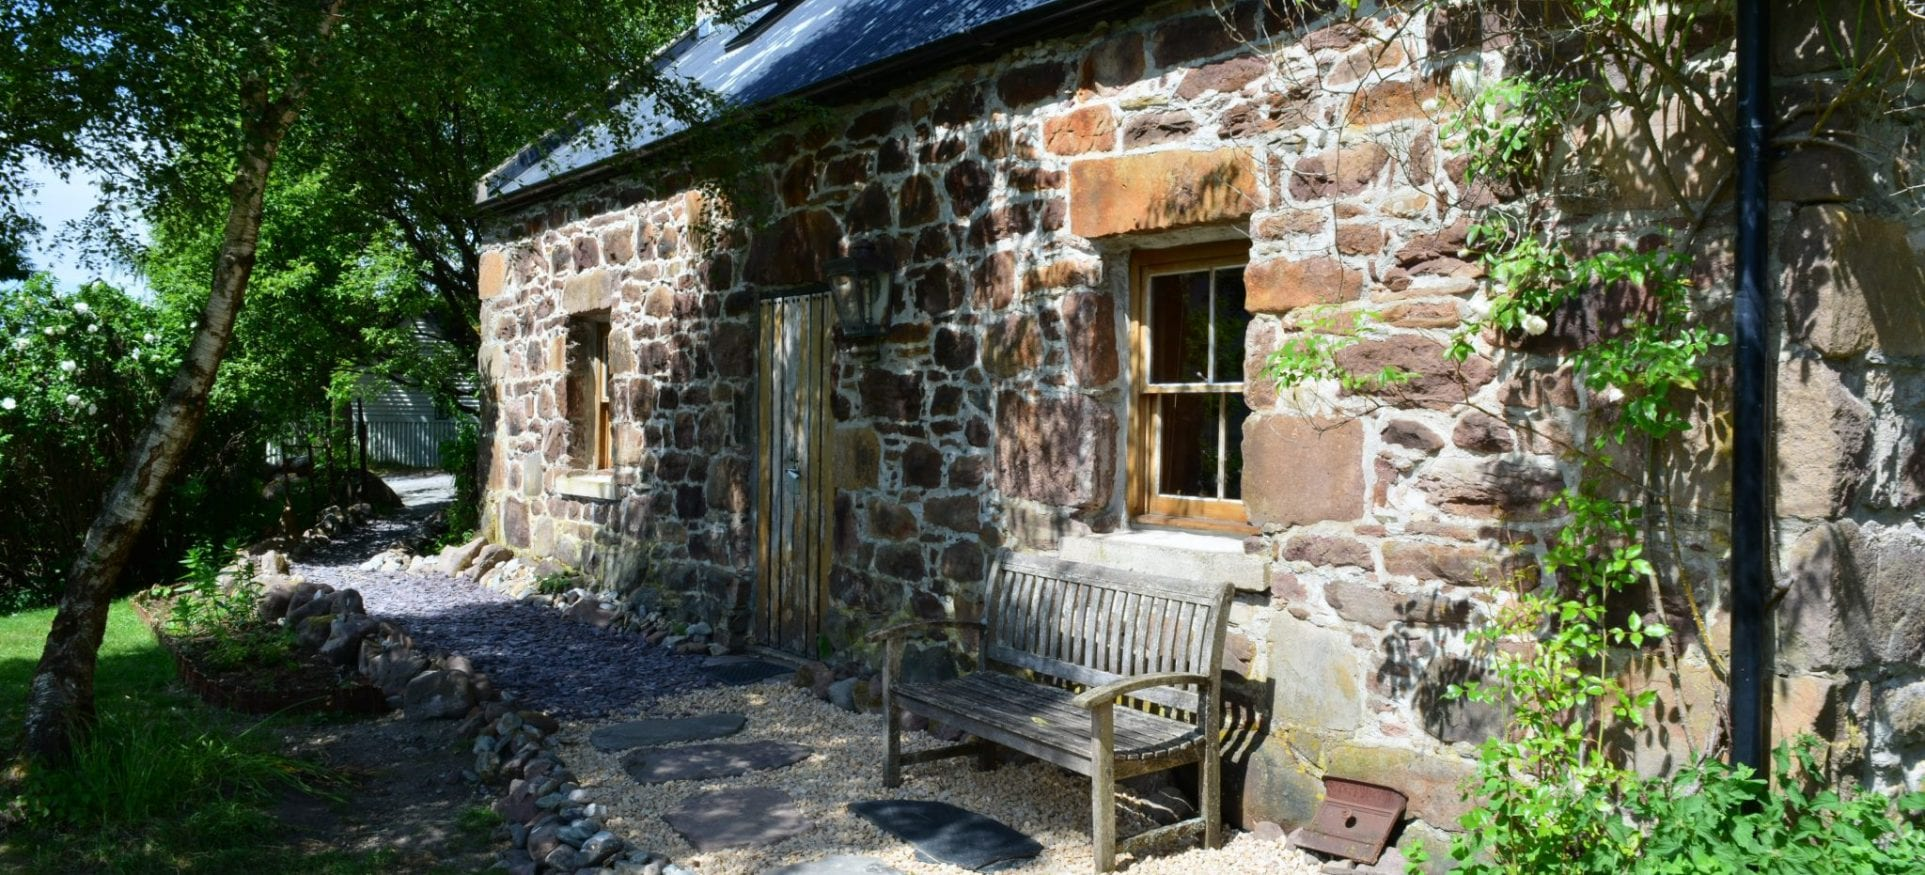 Badralloch bothy and cottage